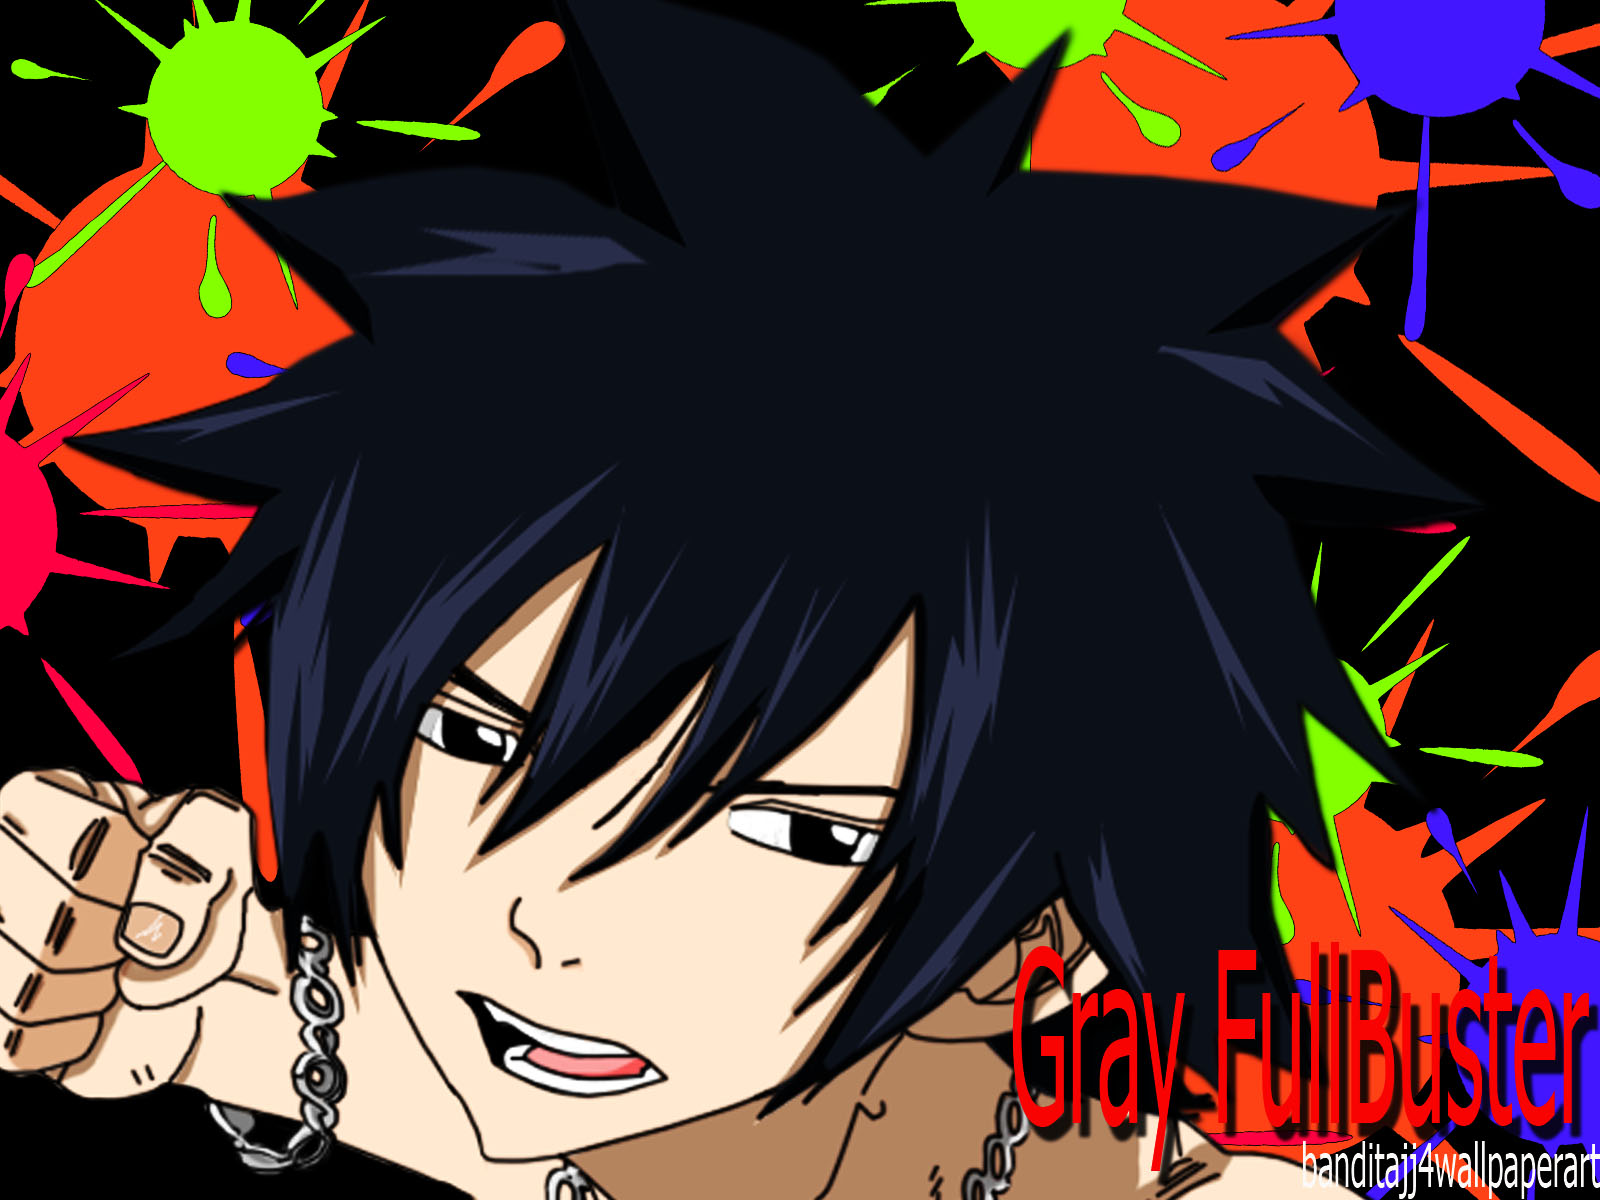 Wallpaper Gray Fullbuster Fairy Tail Wallpapers